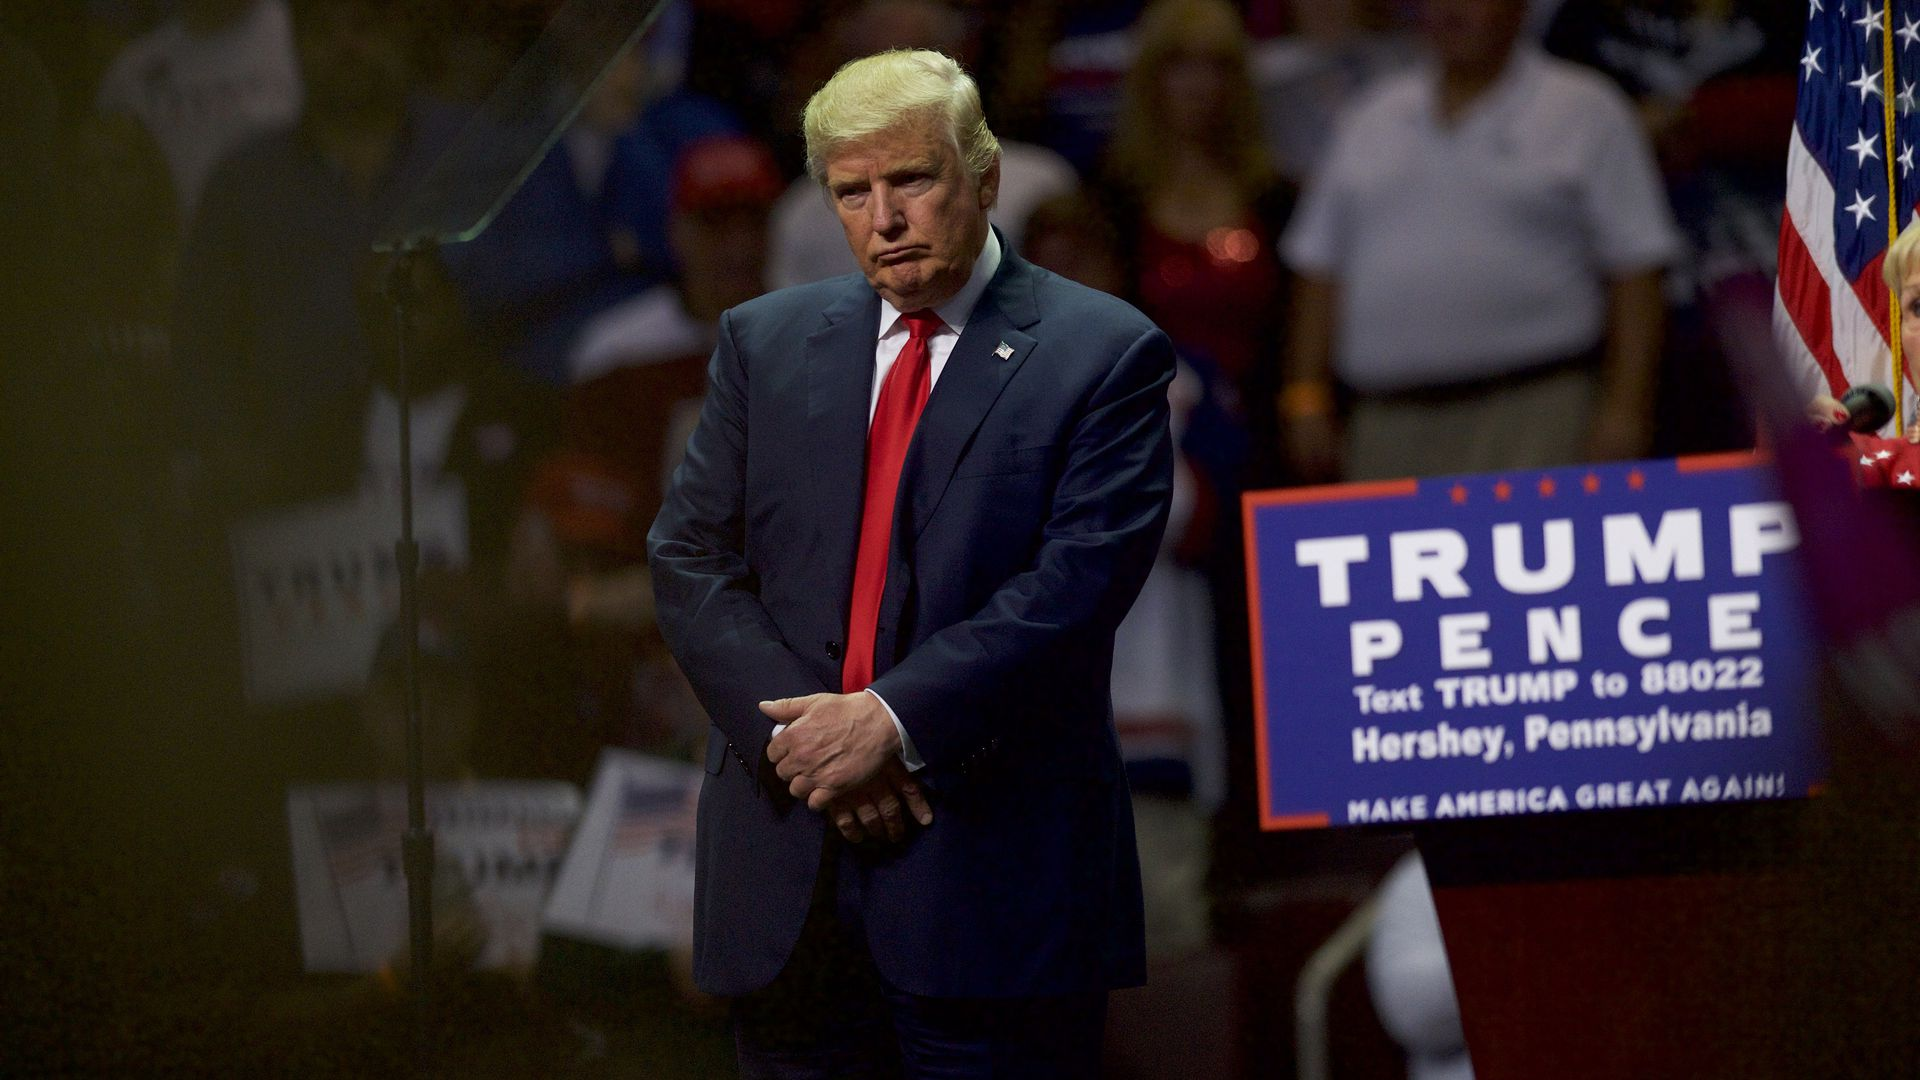 Donald Trump frowns at a campaign rally